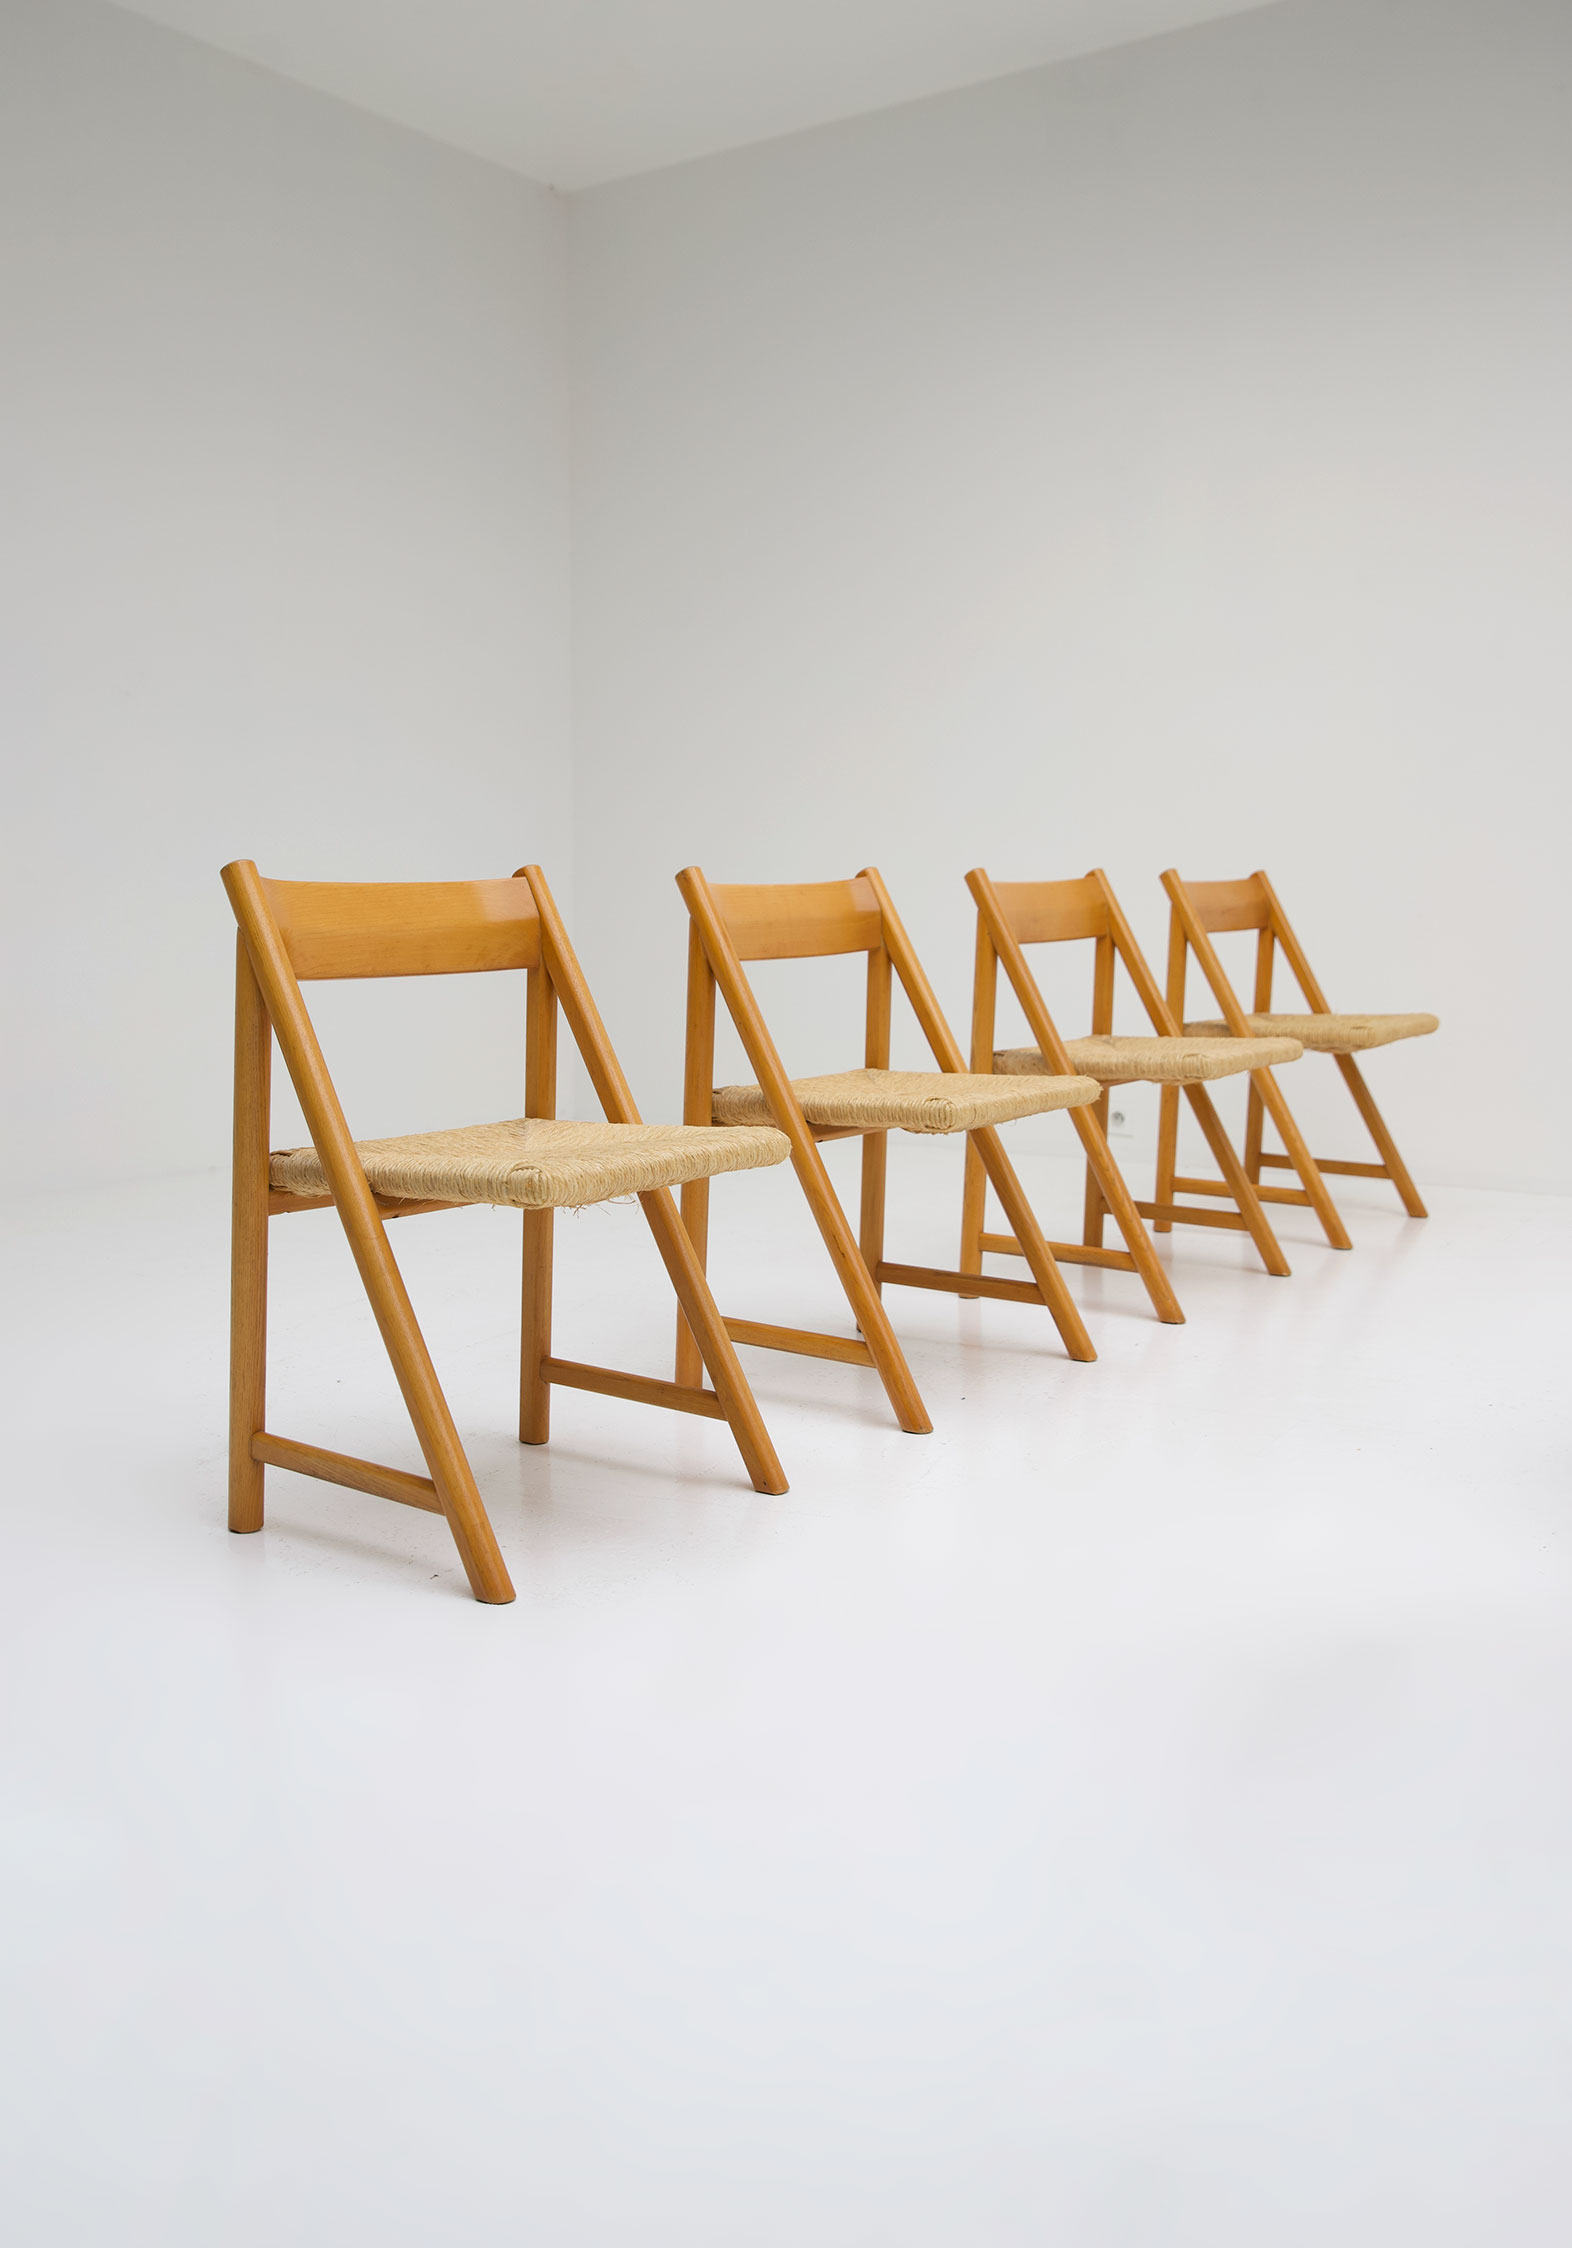 1960s Woven Cane Chairsimage 6